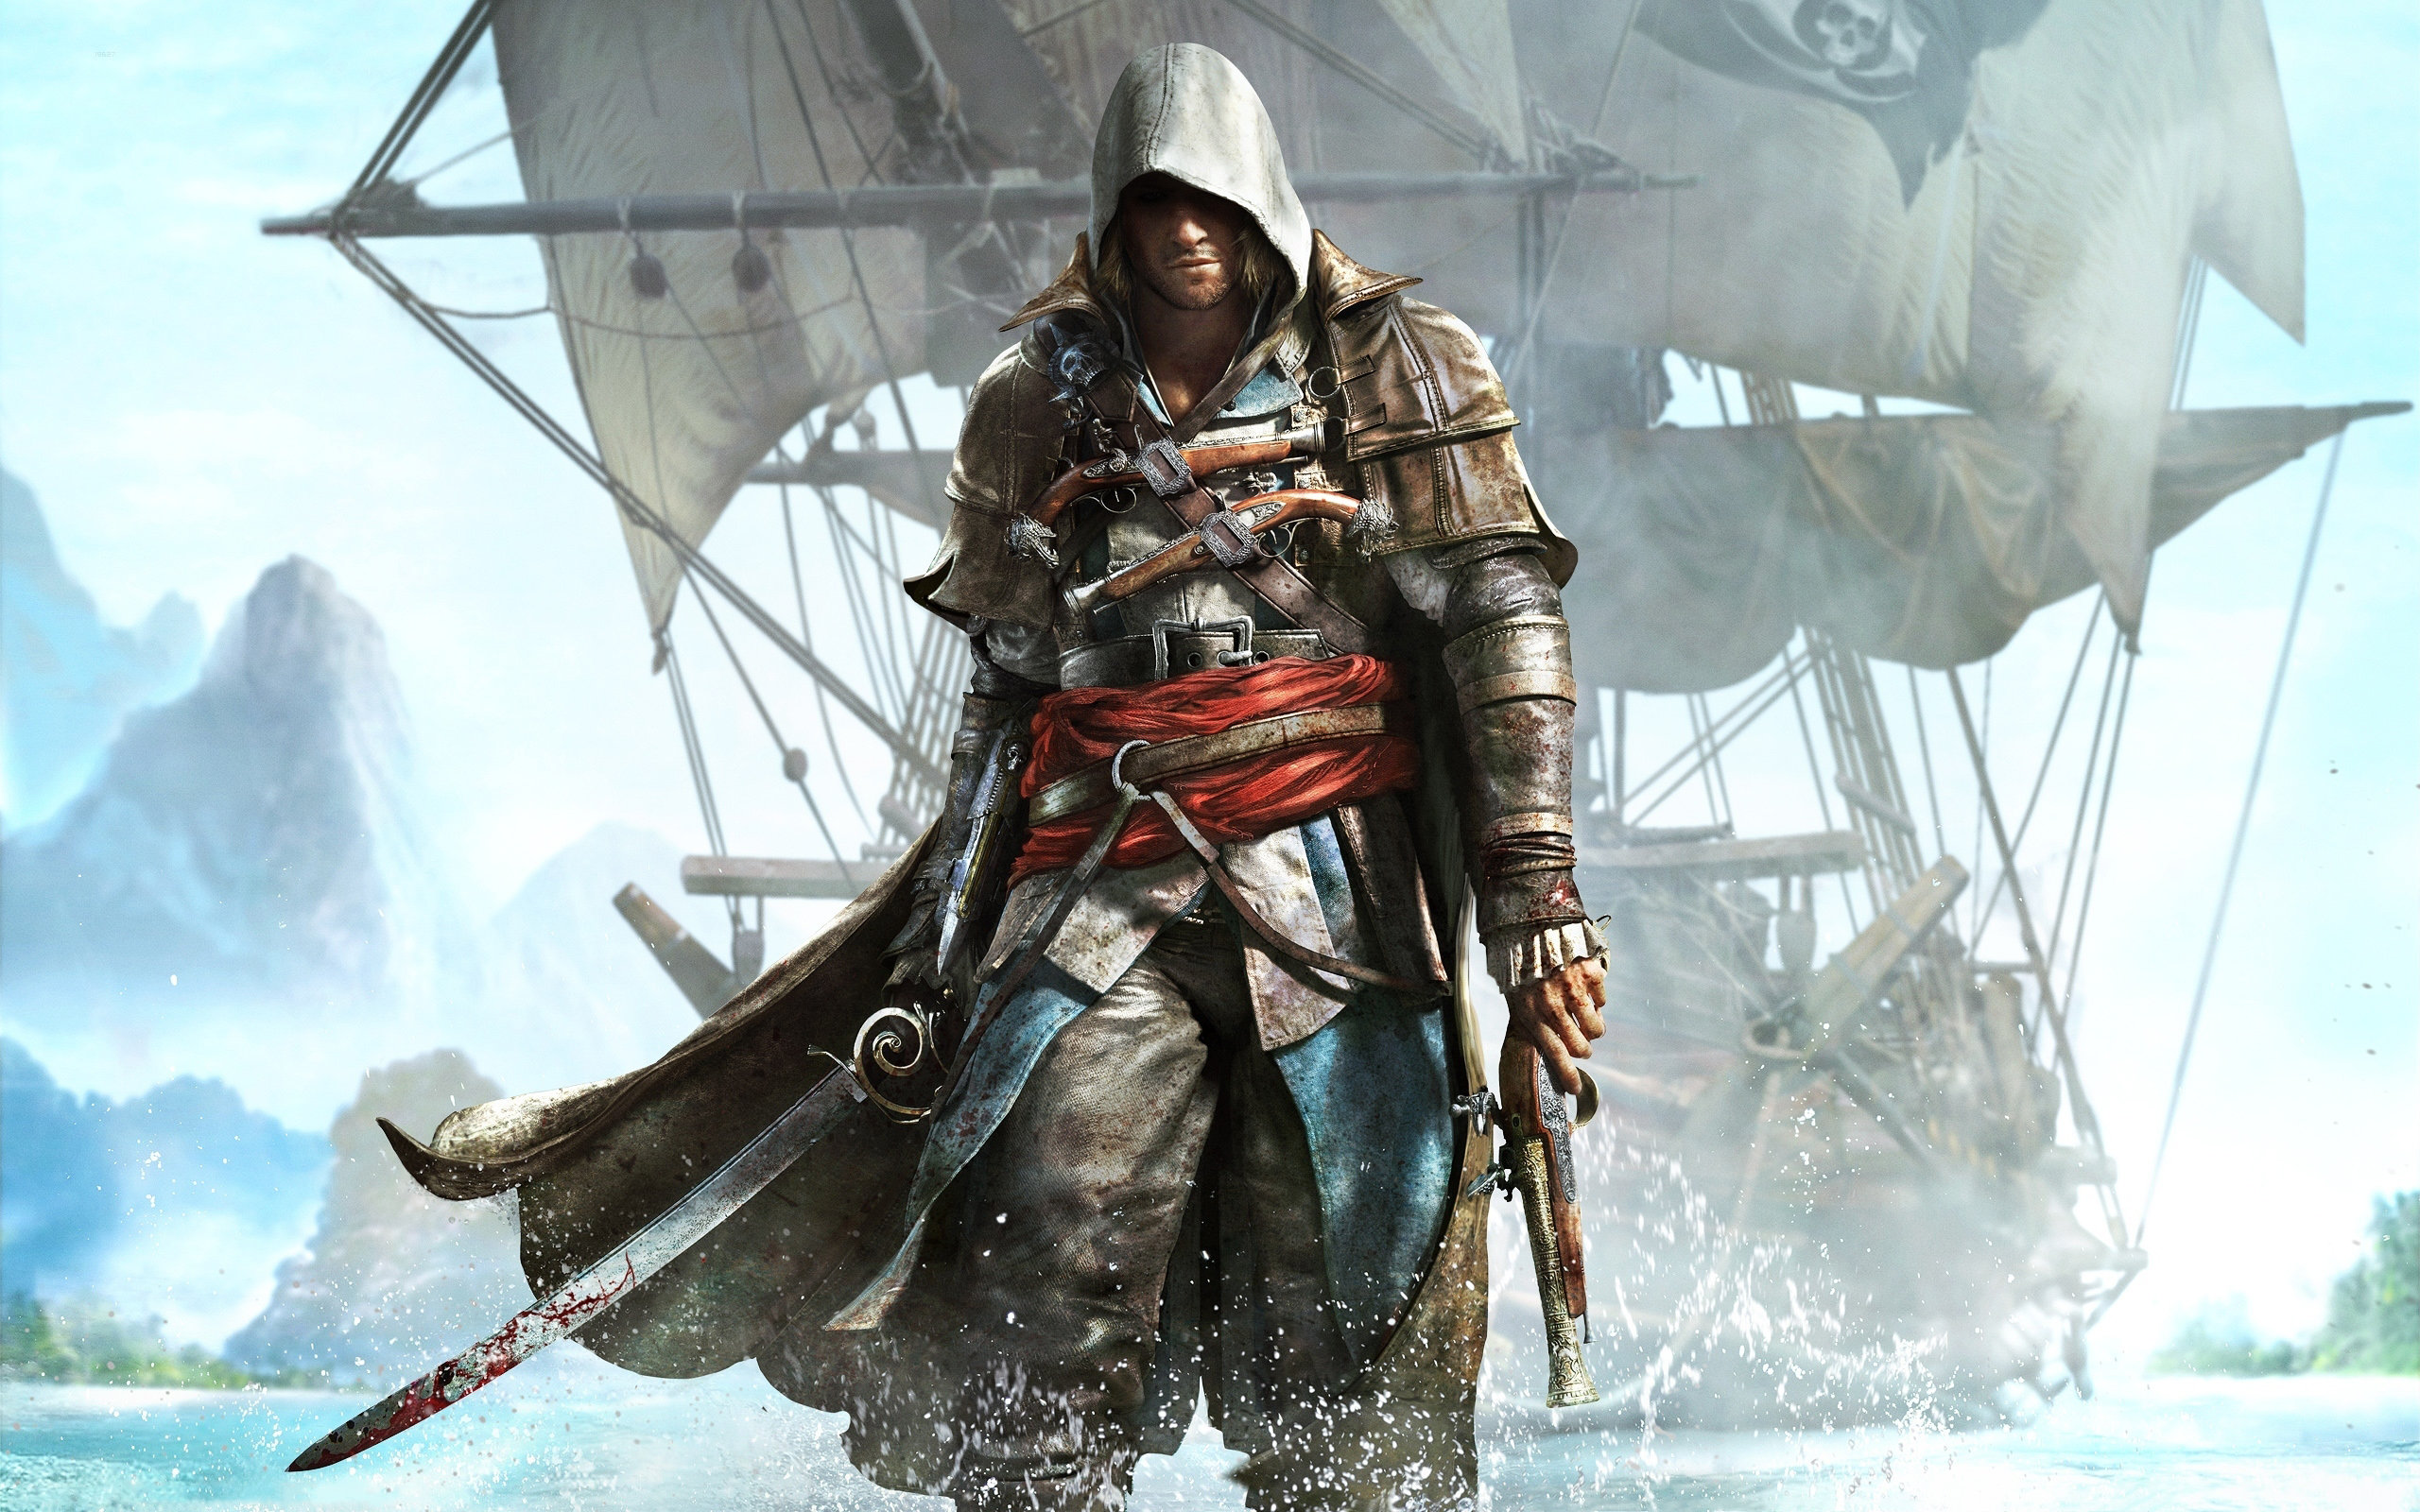 Free Download Assassin S Creed 4 Black Flag Wallpaper Id 234535